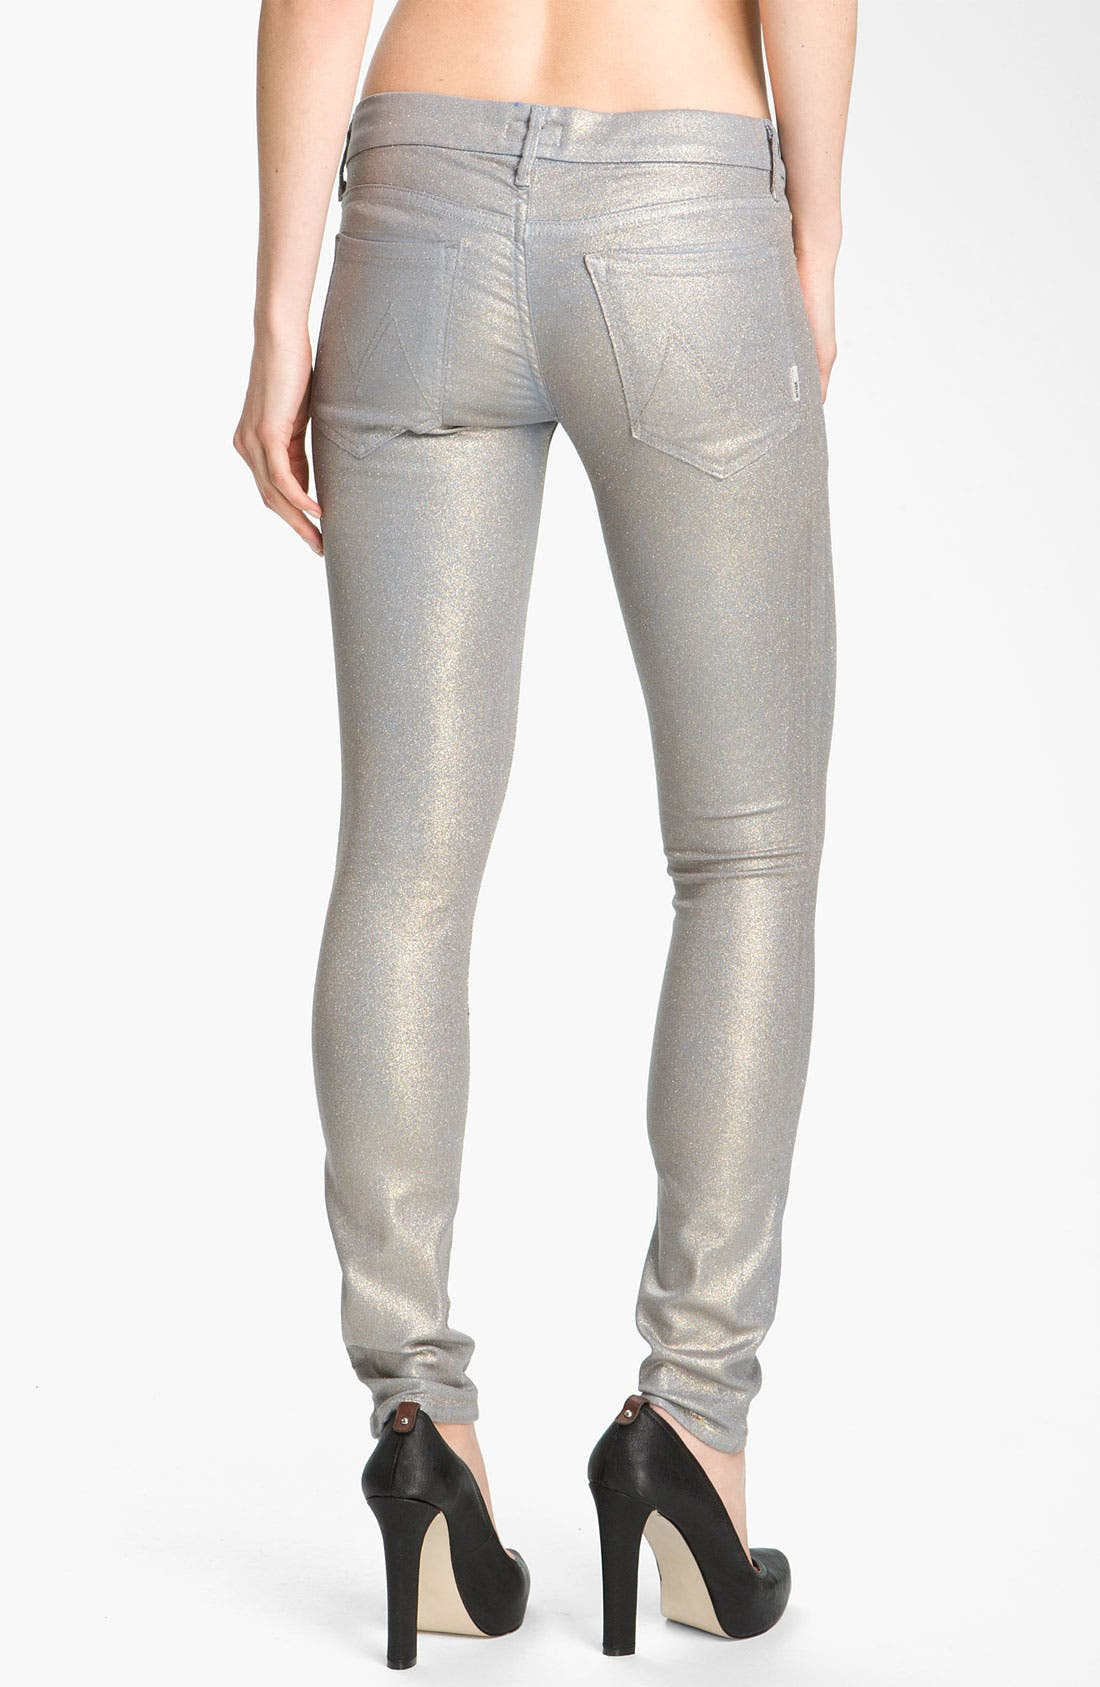 'The Looker' Skinny Stretch Jeans,                             Alternate thumbnail 2, color,                             Powder Blue Glimmer